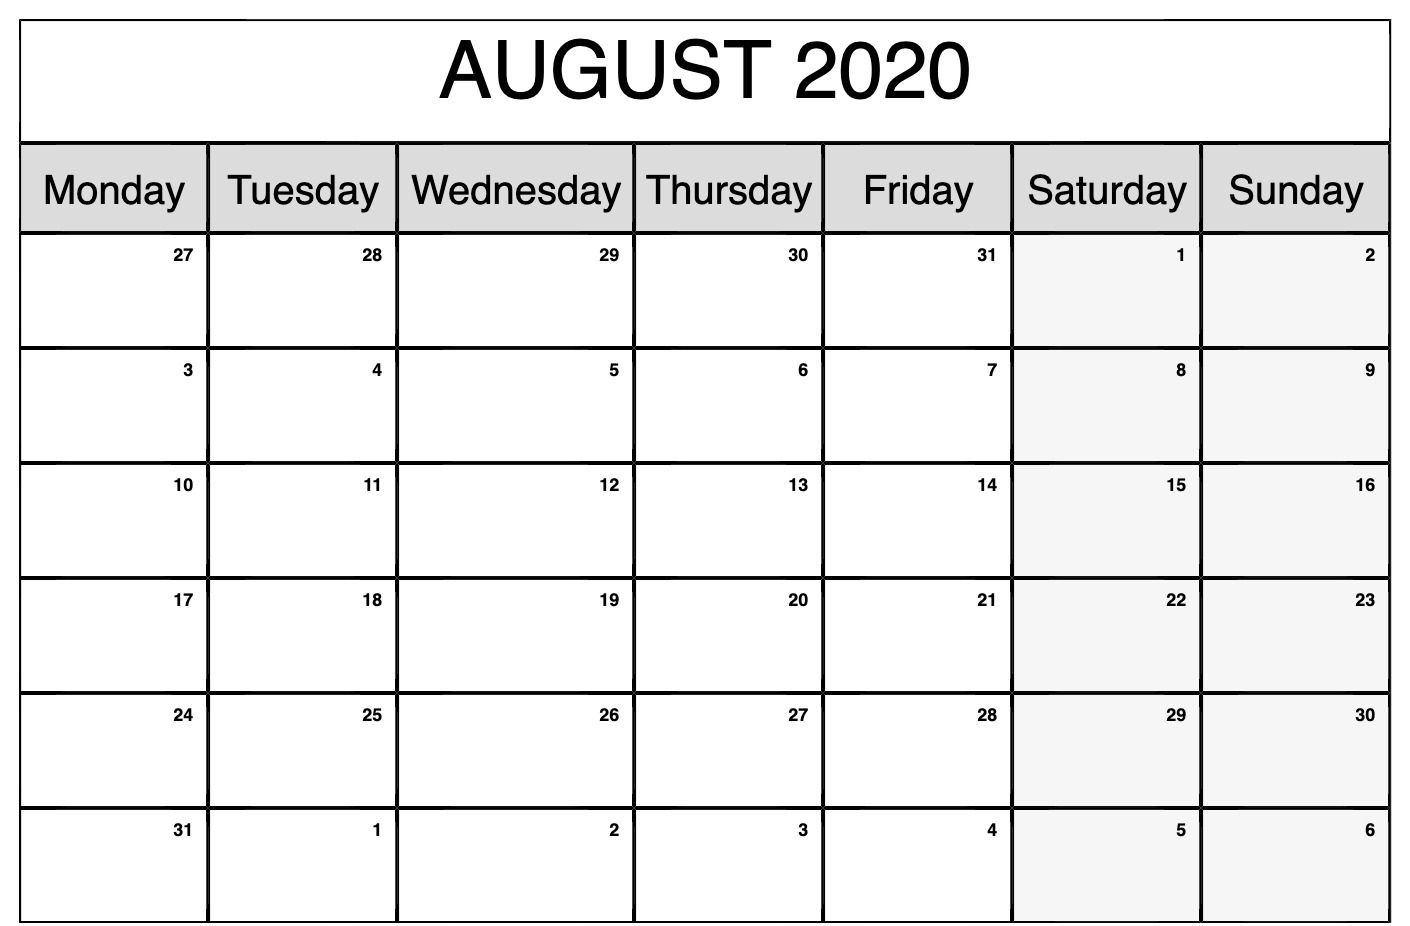 8 August 2020